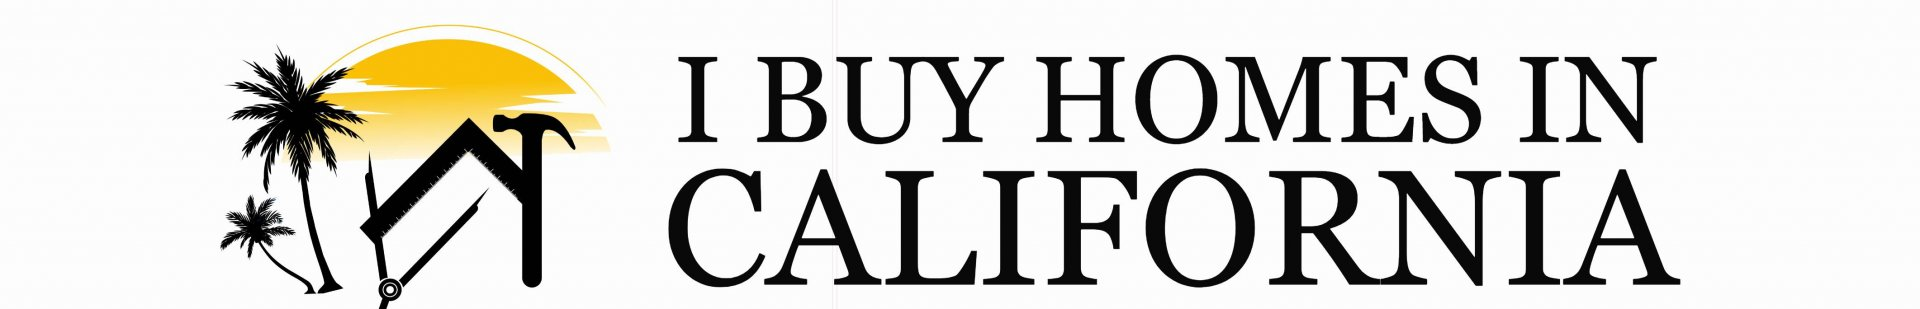 I Buy Homes California logo